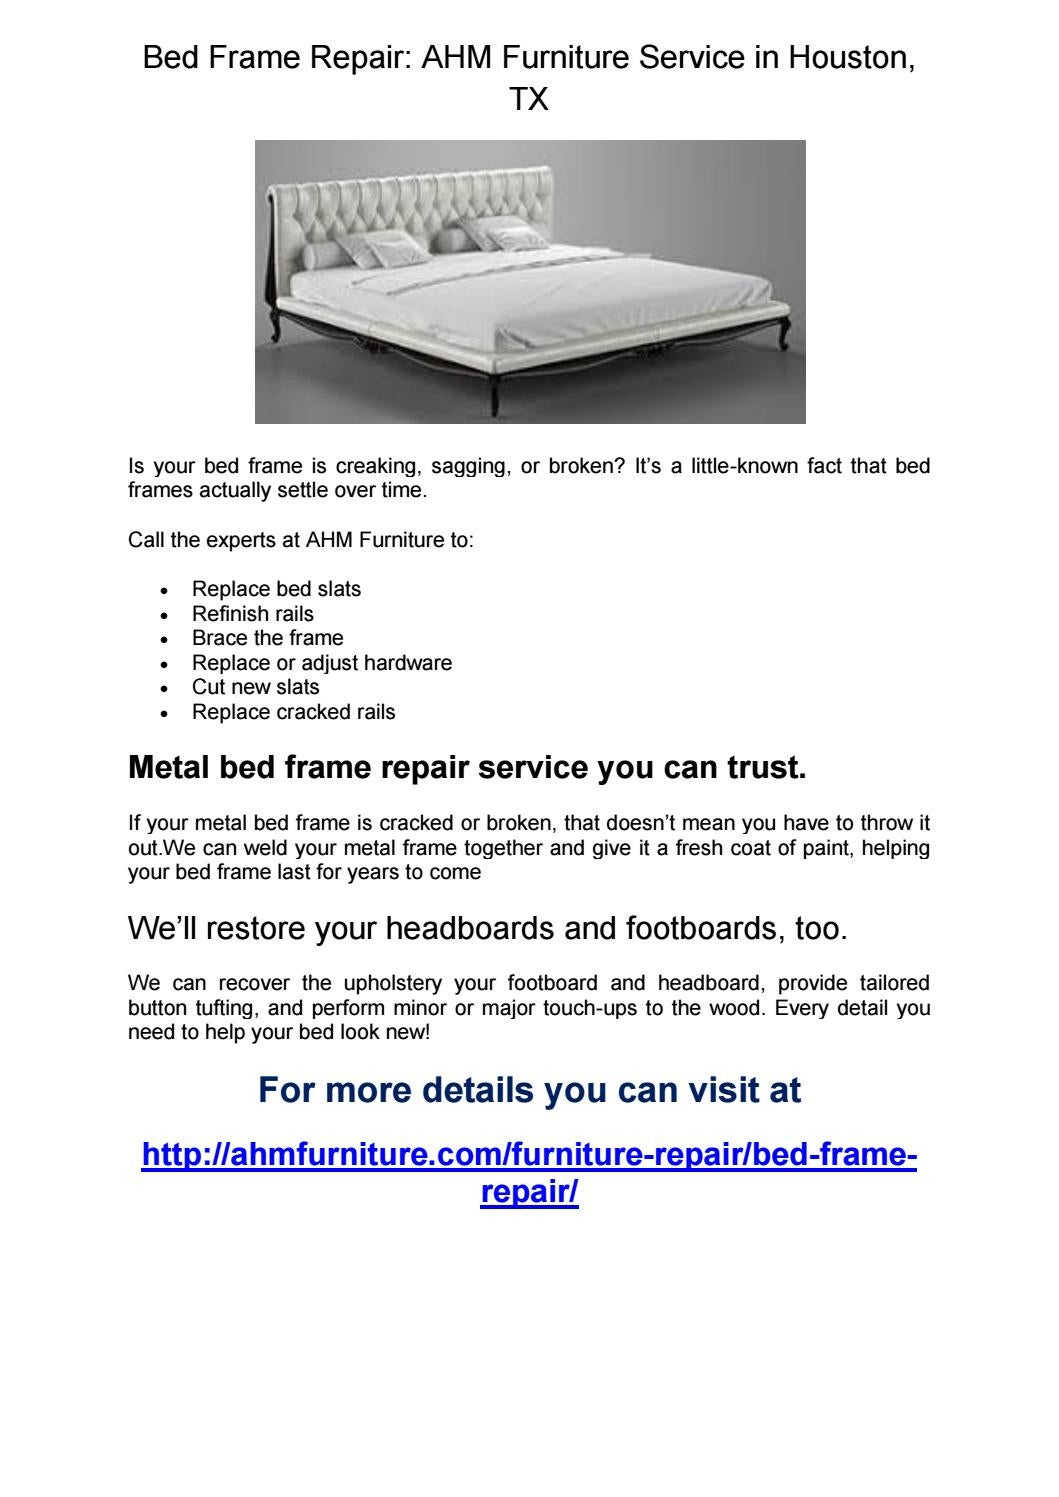 Bed frame repair by shirleyemerson - issuu